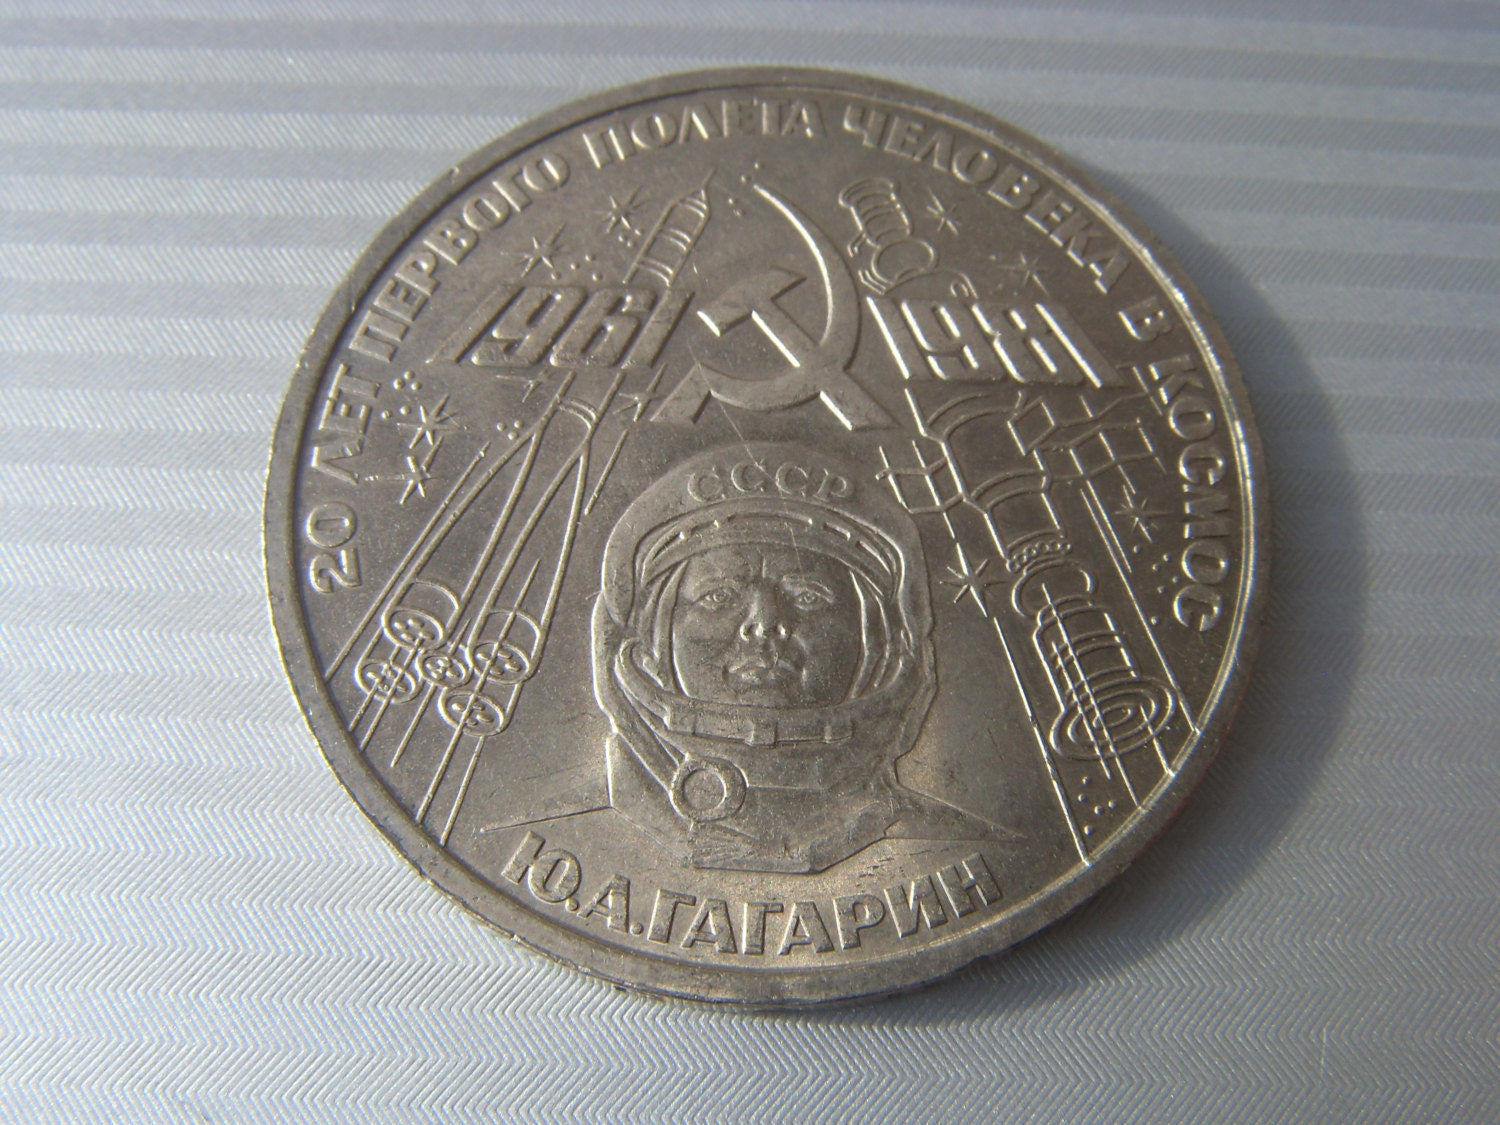 Gagarin coin Vintage Soviet 1 Ruble Coin of 1981 by Astra9